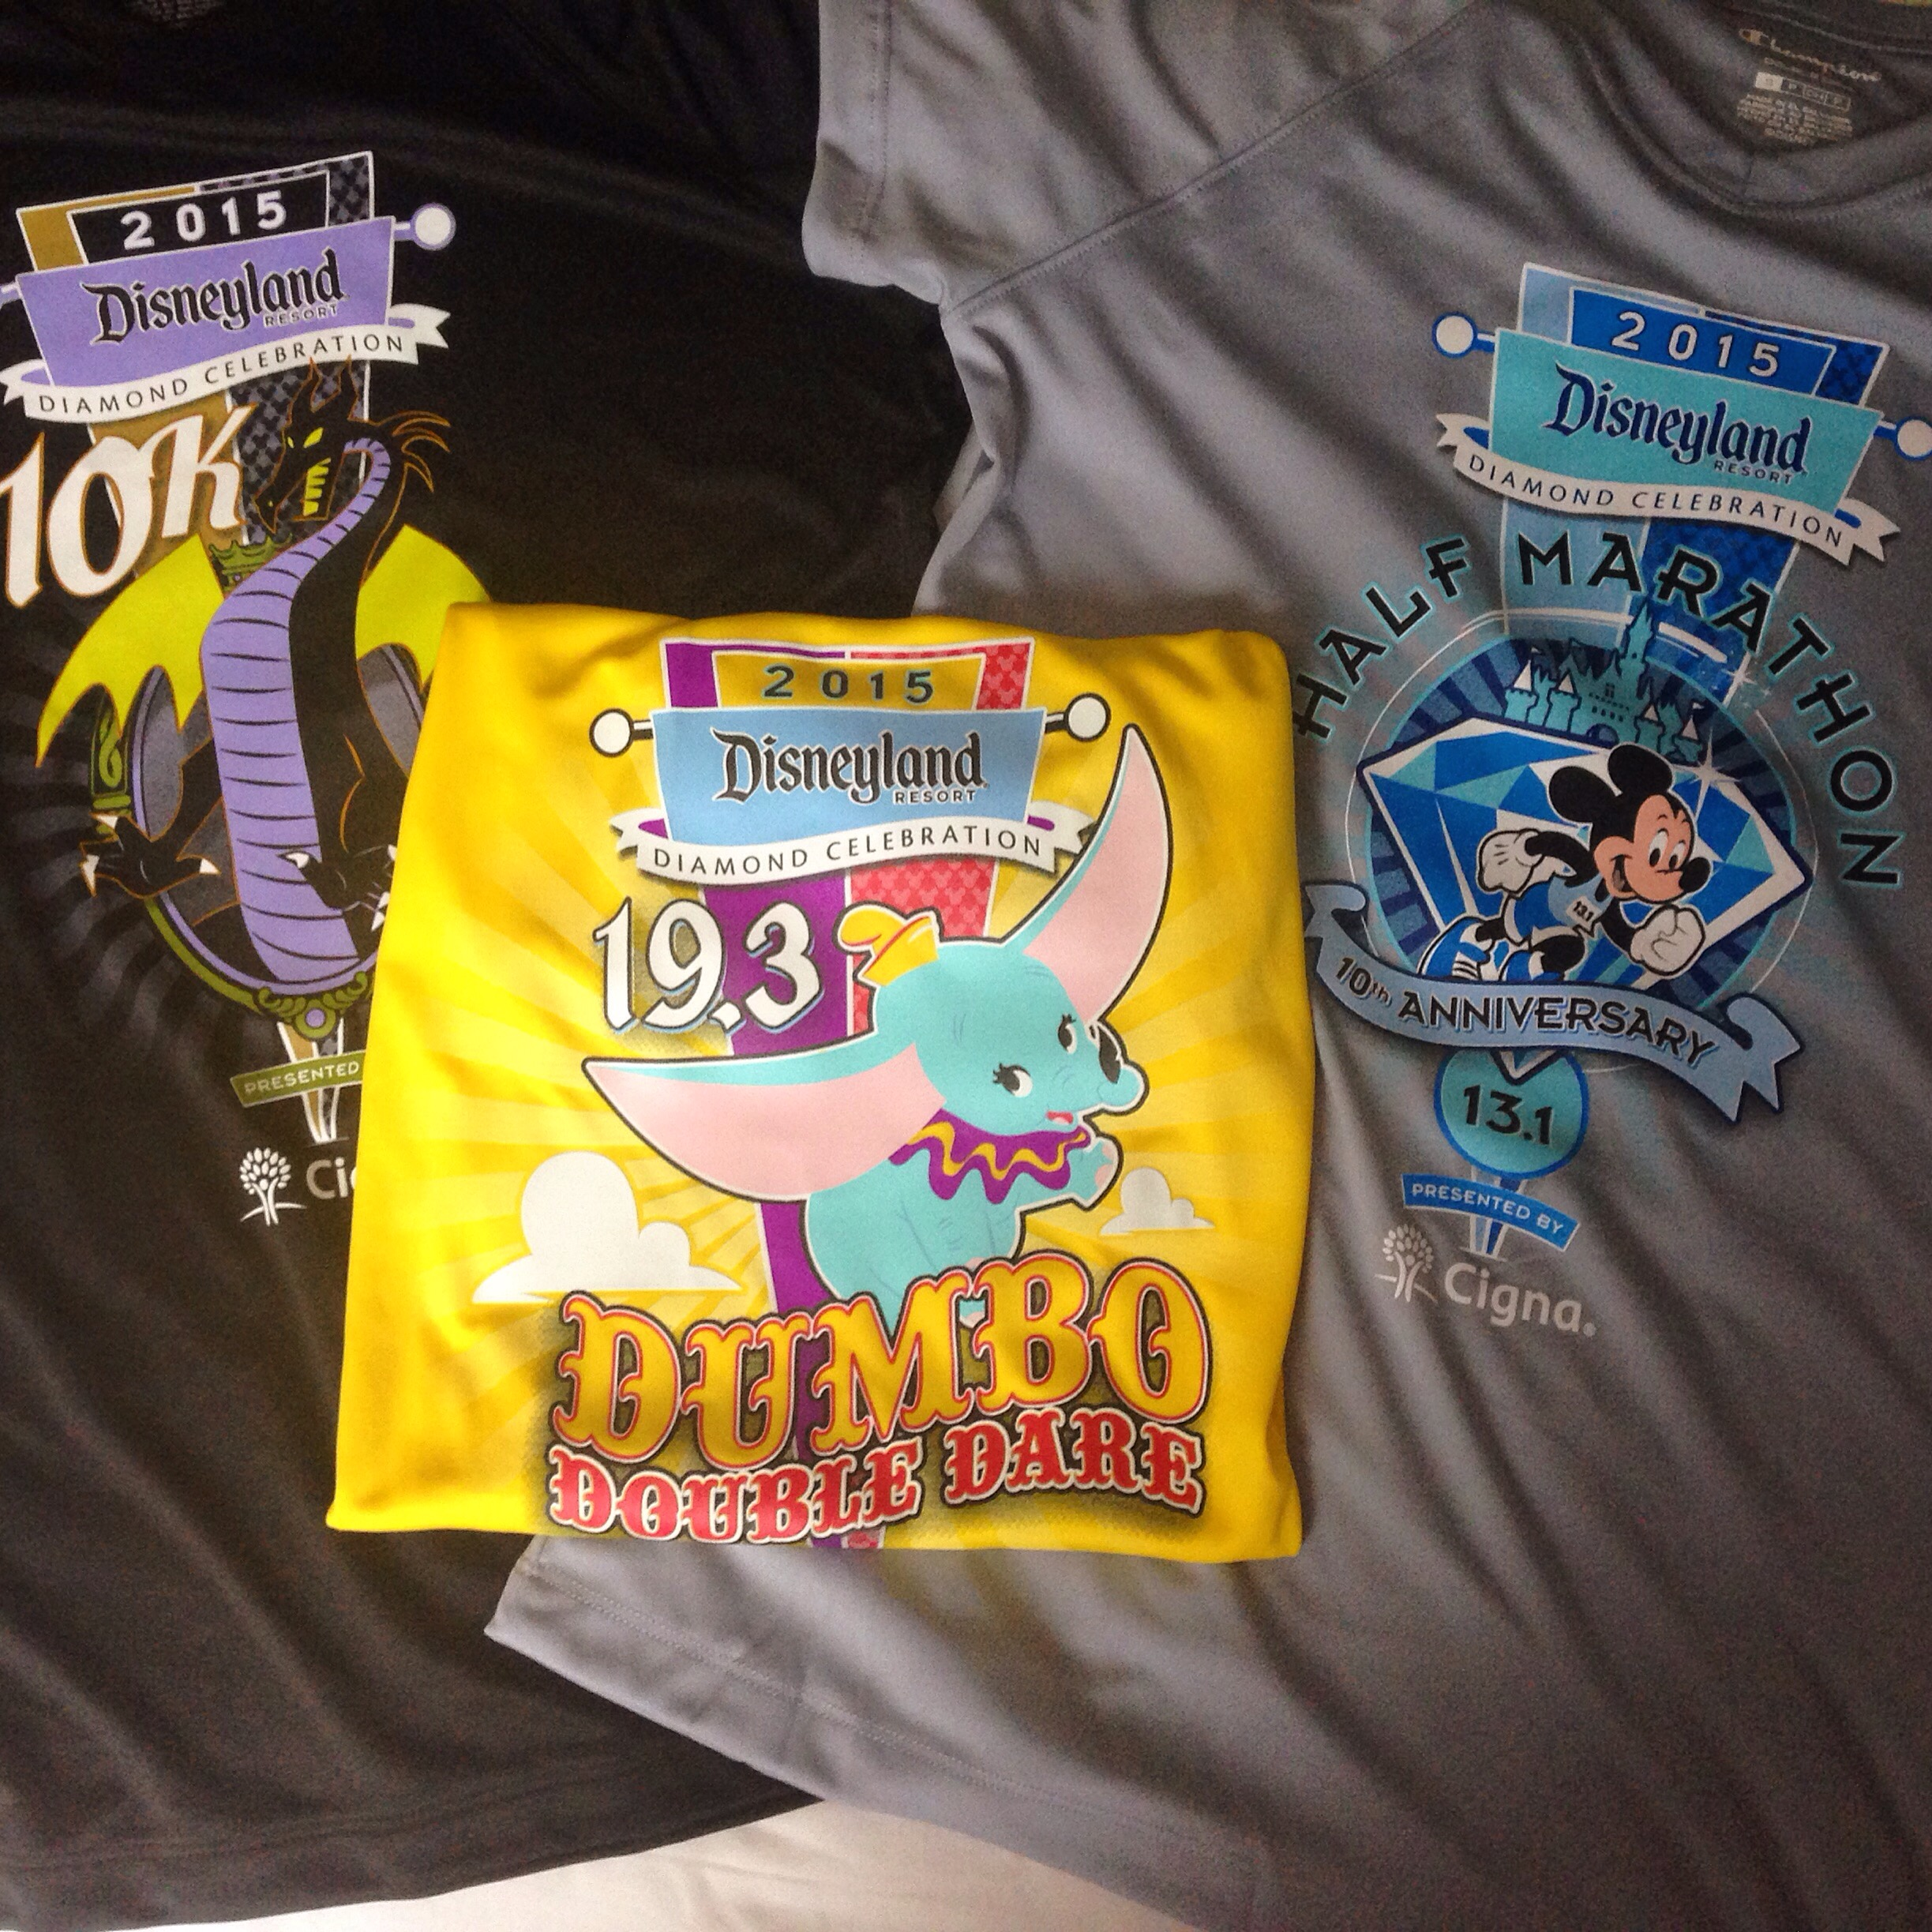 2015 Disneyland 10K, Dumbo Double Dare and Disneyland Half Marathon race shirts